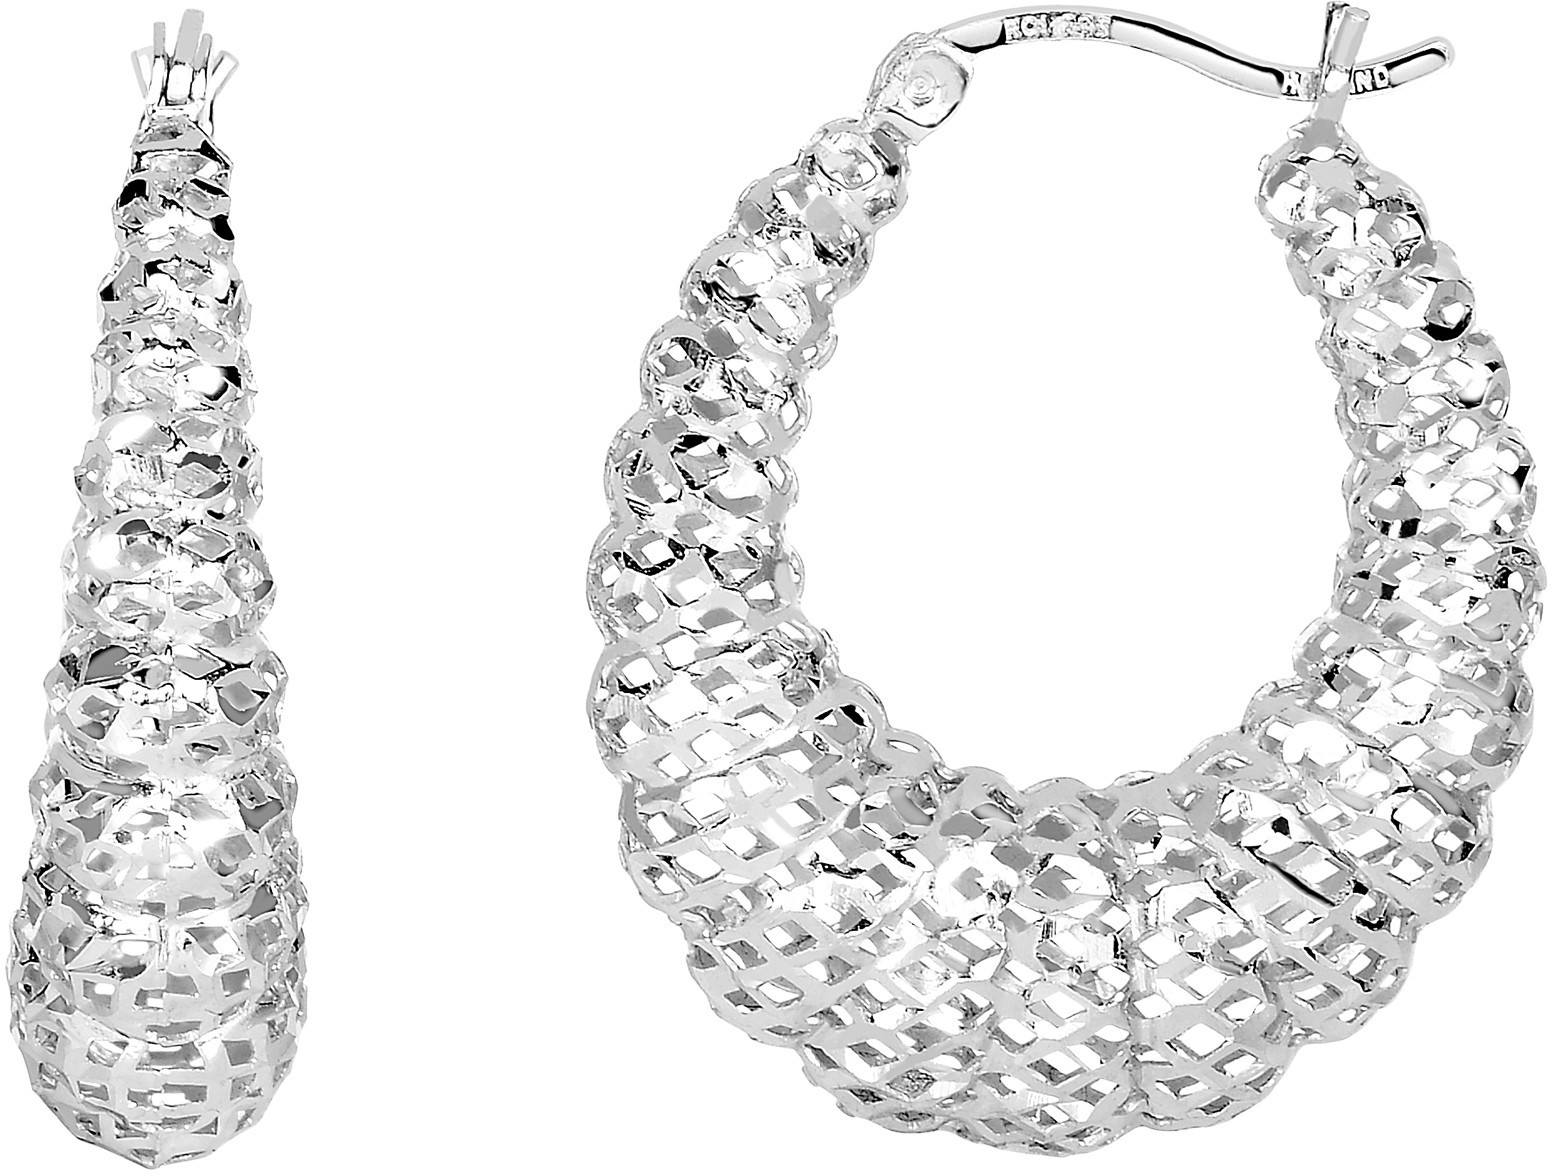 Silver Rhodium Plated Stampato Mesh Hoop Earrings (BTAGE1796) - DISCONTINUED